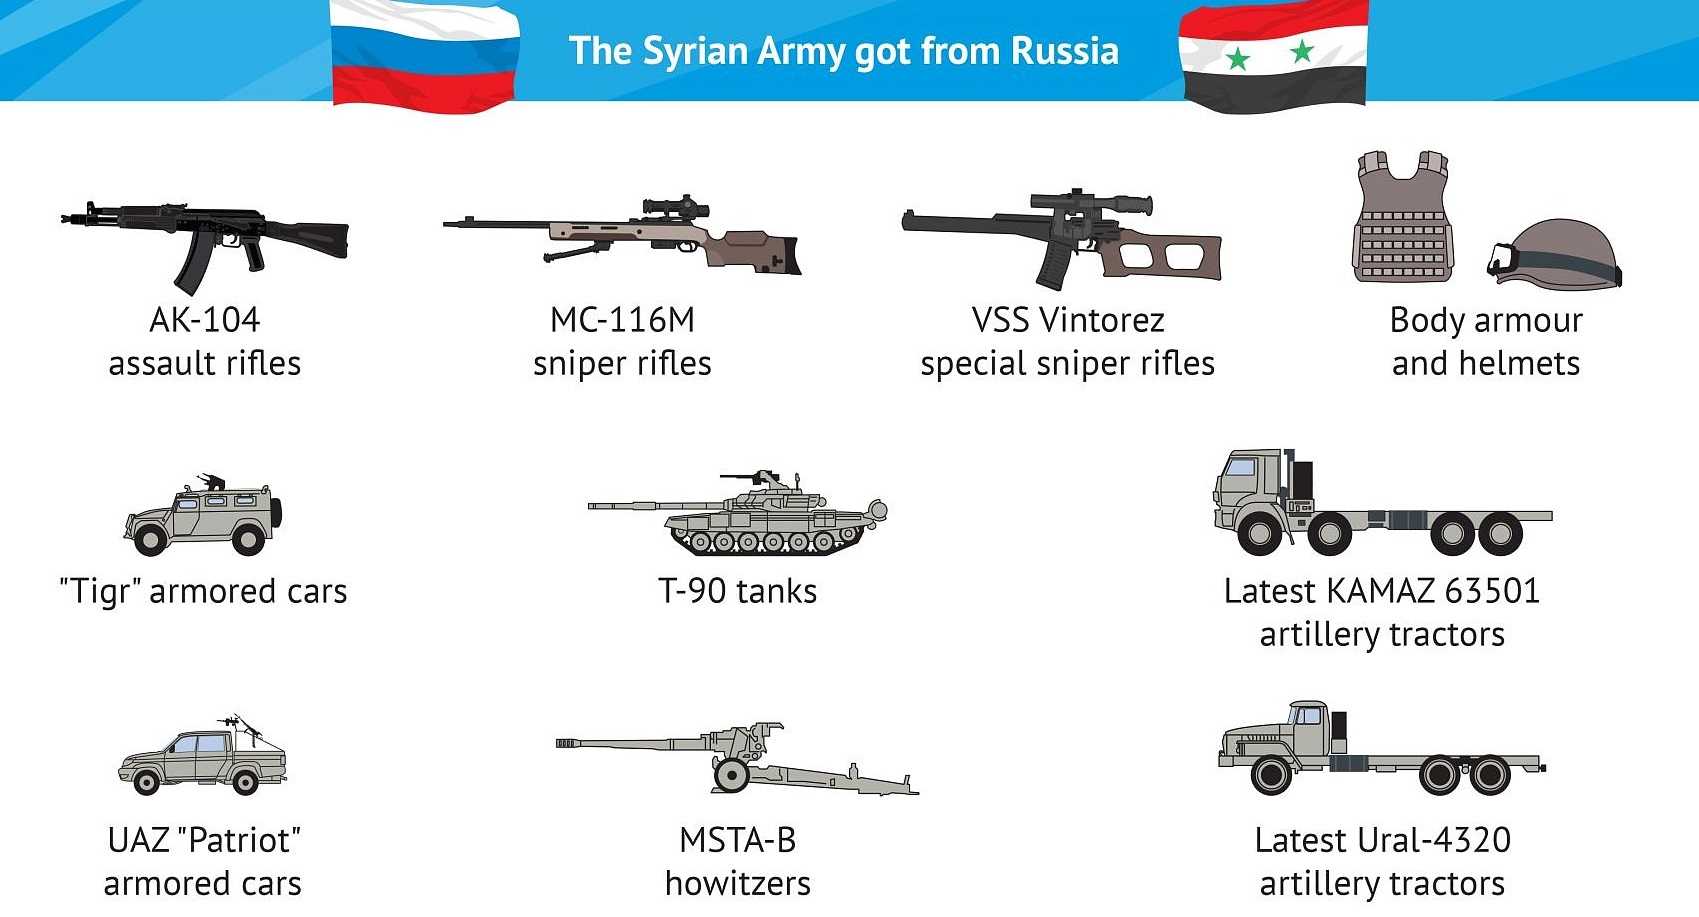 Syrian Army got from Russia